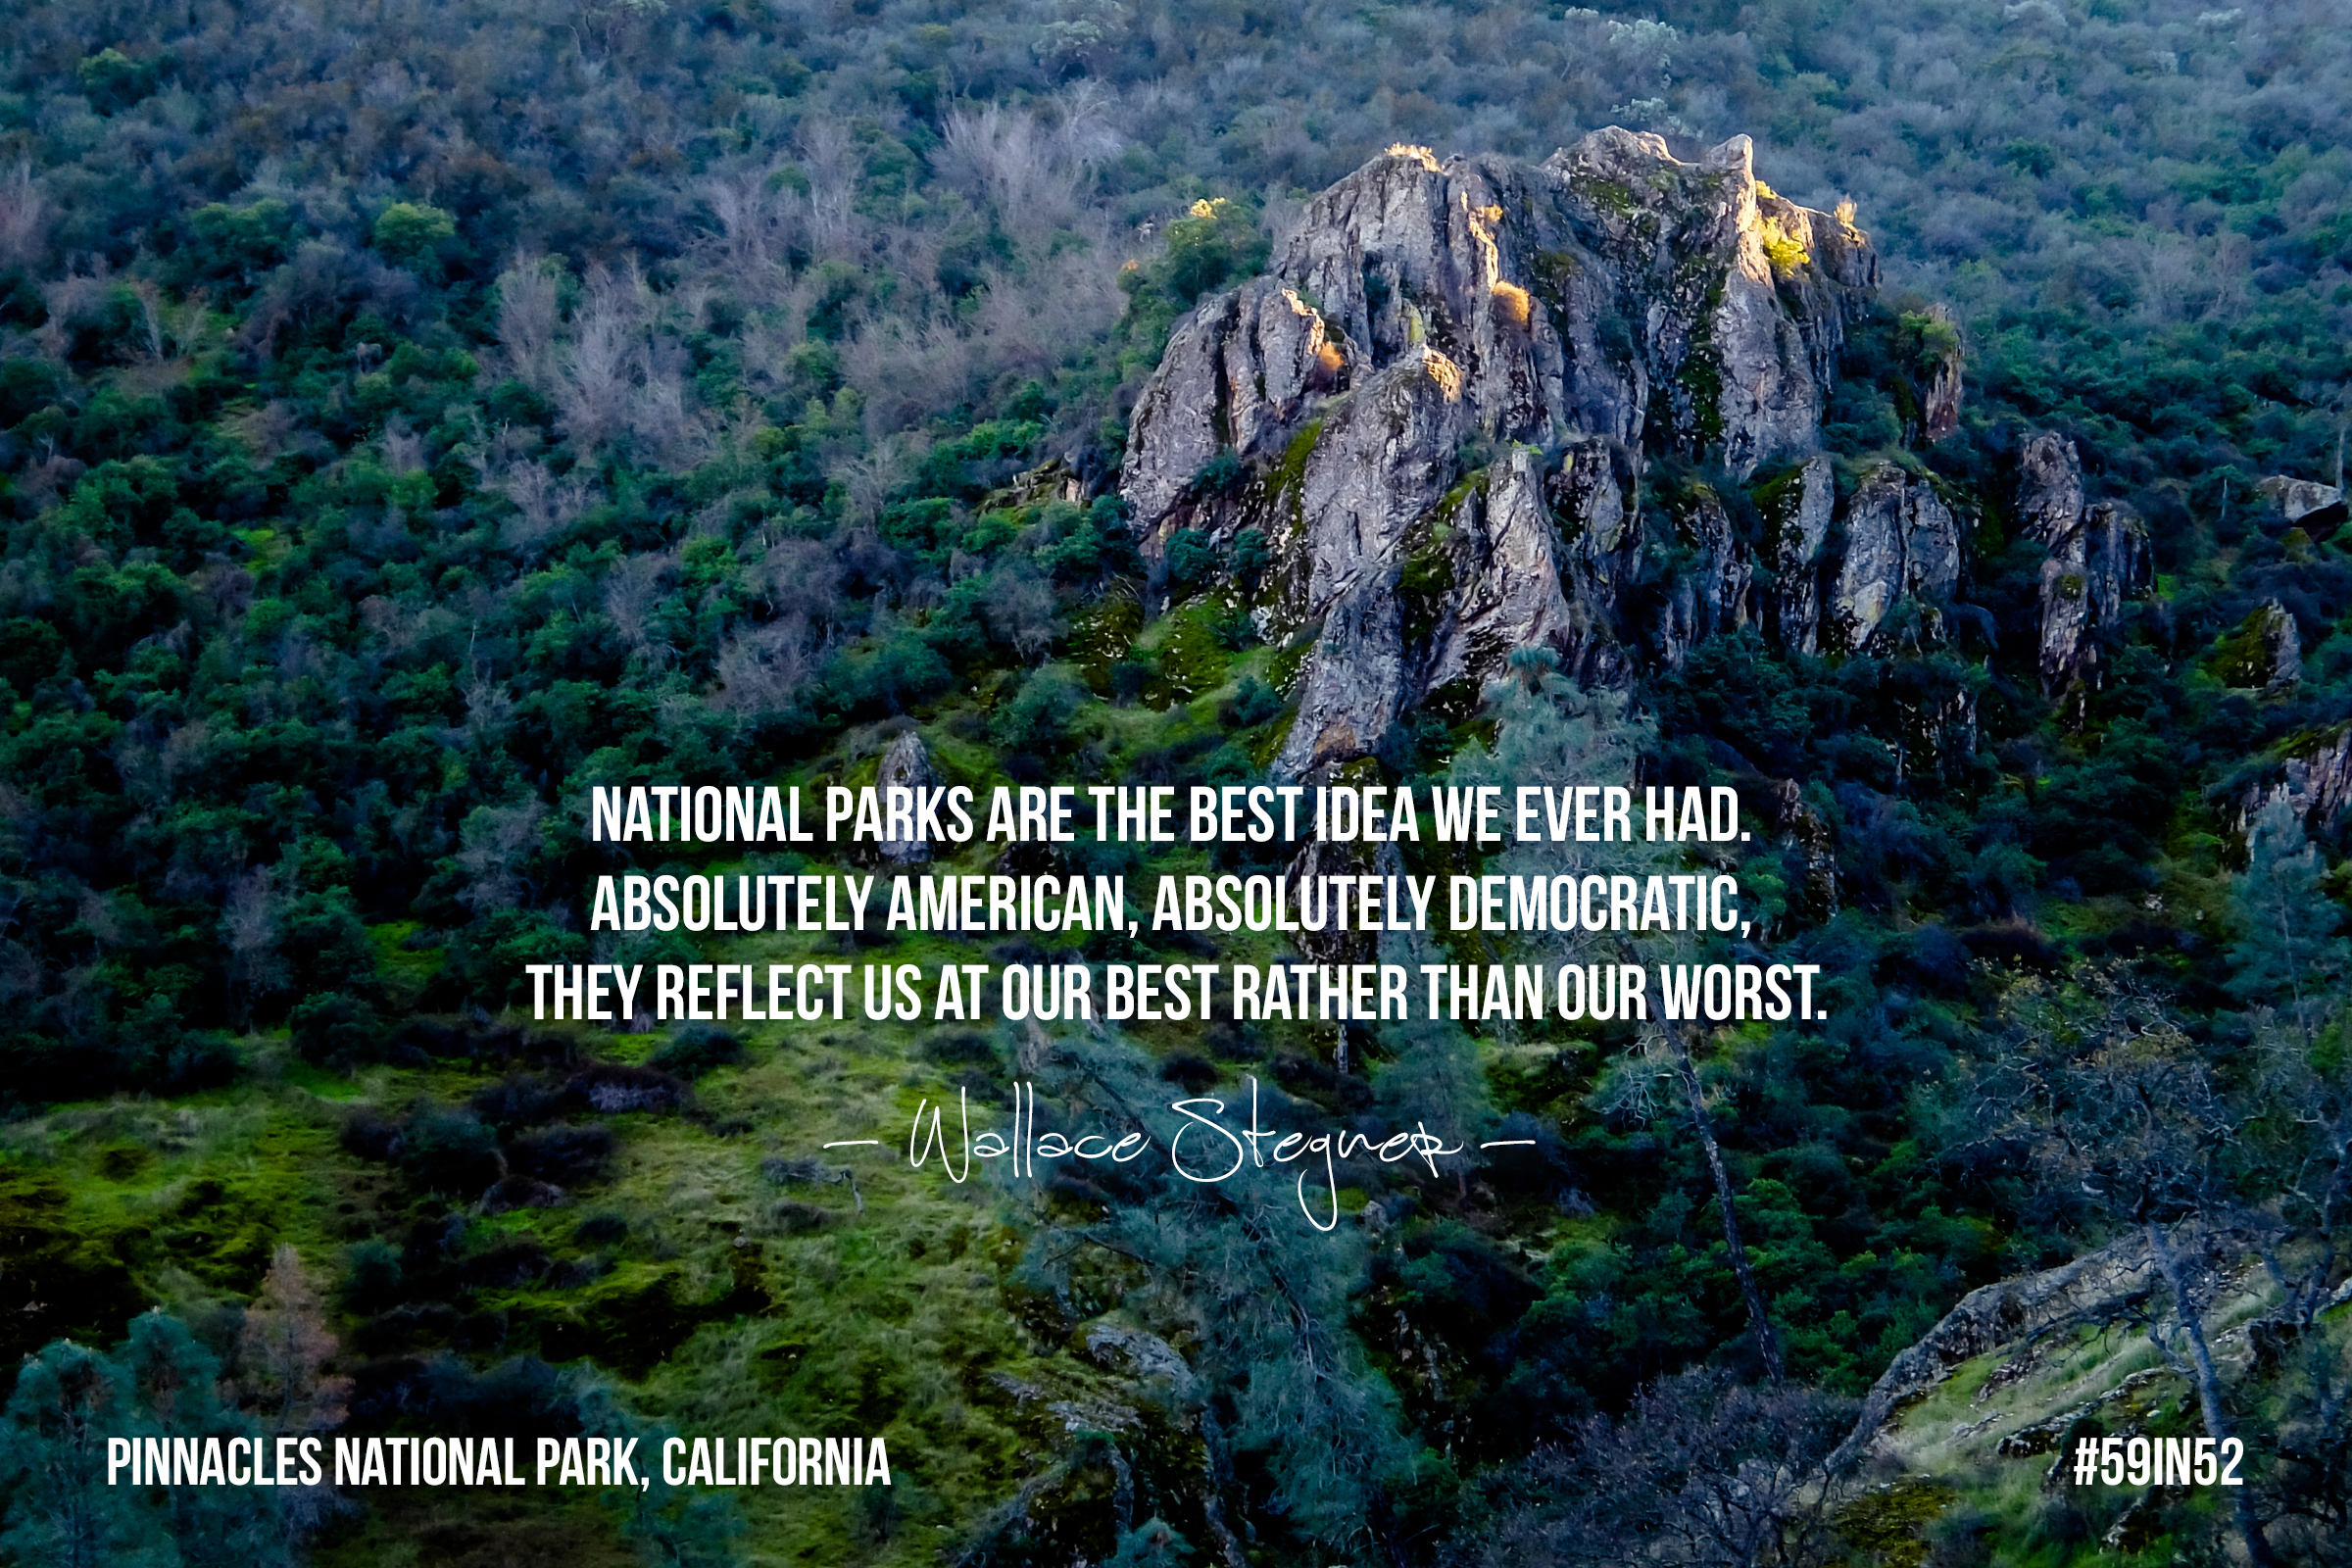 """National parks are the best idea we ever had. Absolutely American, absolutely democratic, they reflect us at our best rather than our worst."" - Wallace Stegner"